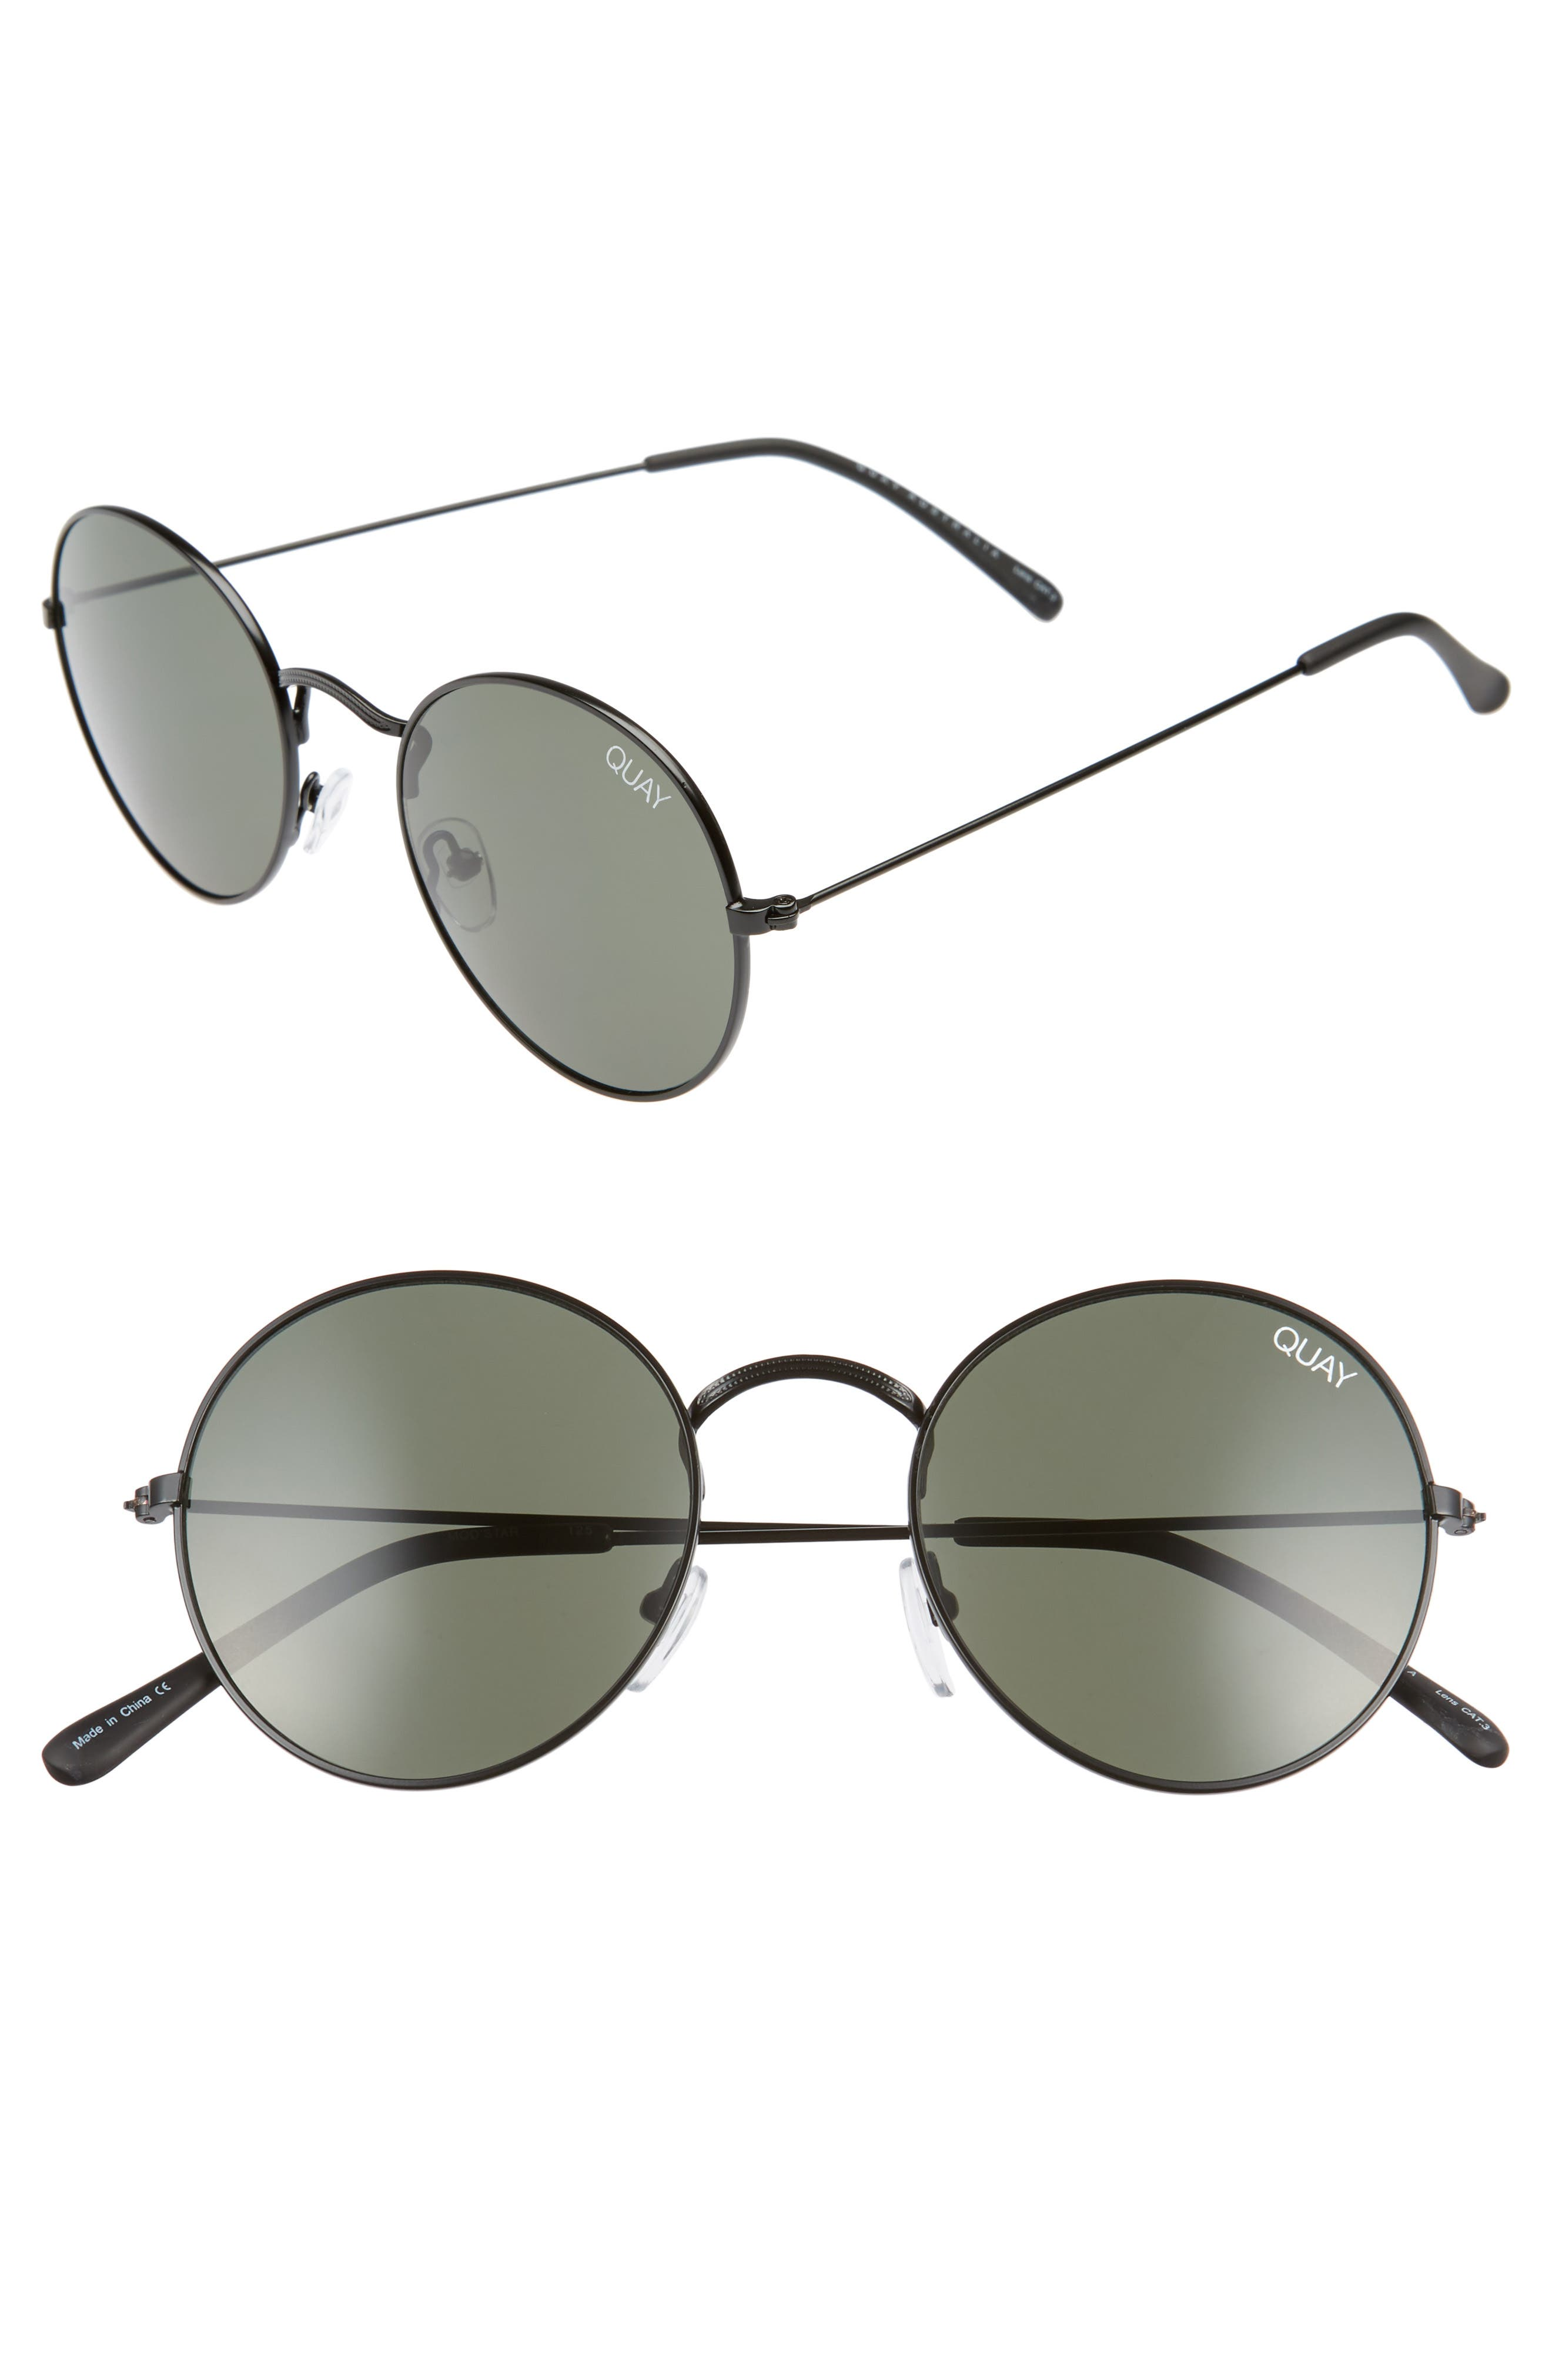 50mm Mod Star Round Sunglasses,                         Main,                         color, 014